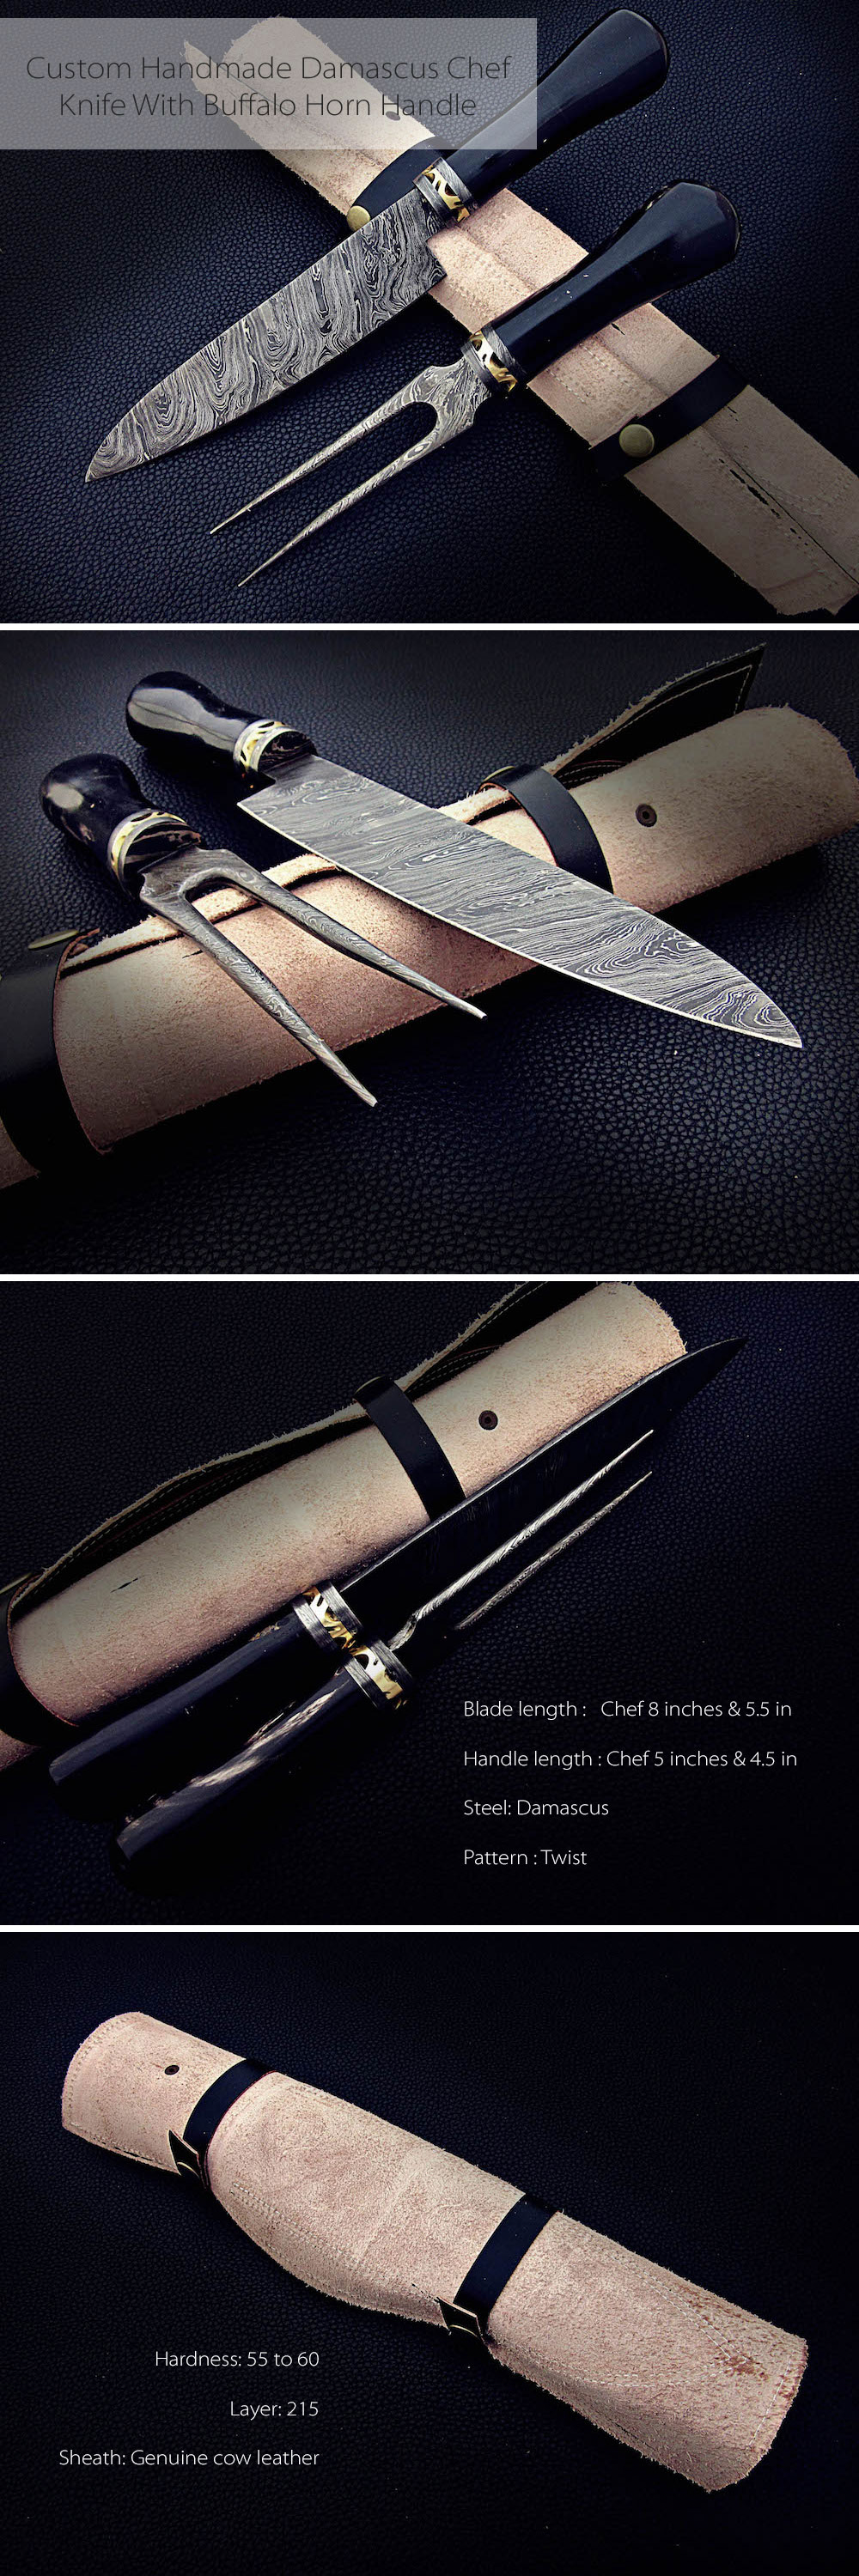 Custom Handmade Damascus Chef Knife With Buffalo Horn Handle Wonderful High Quality Handmade Chef/Kitchen Knives